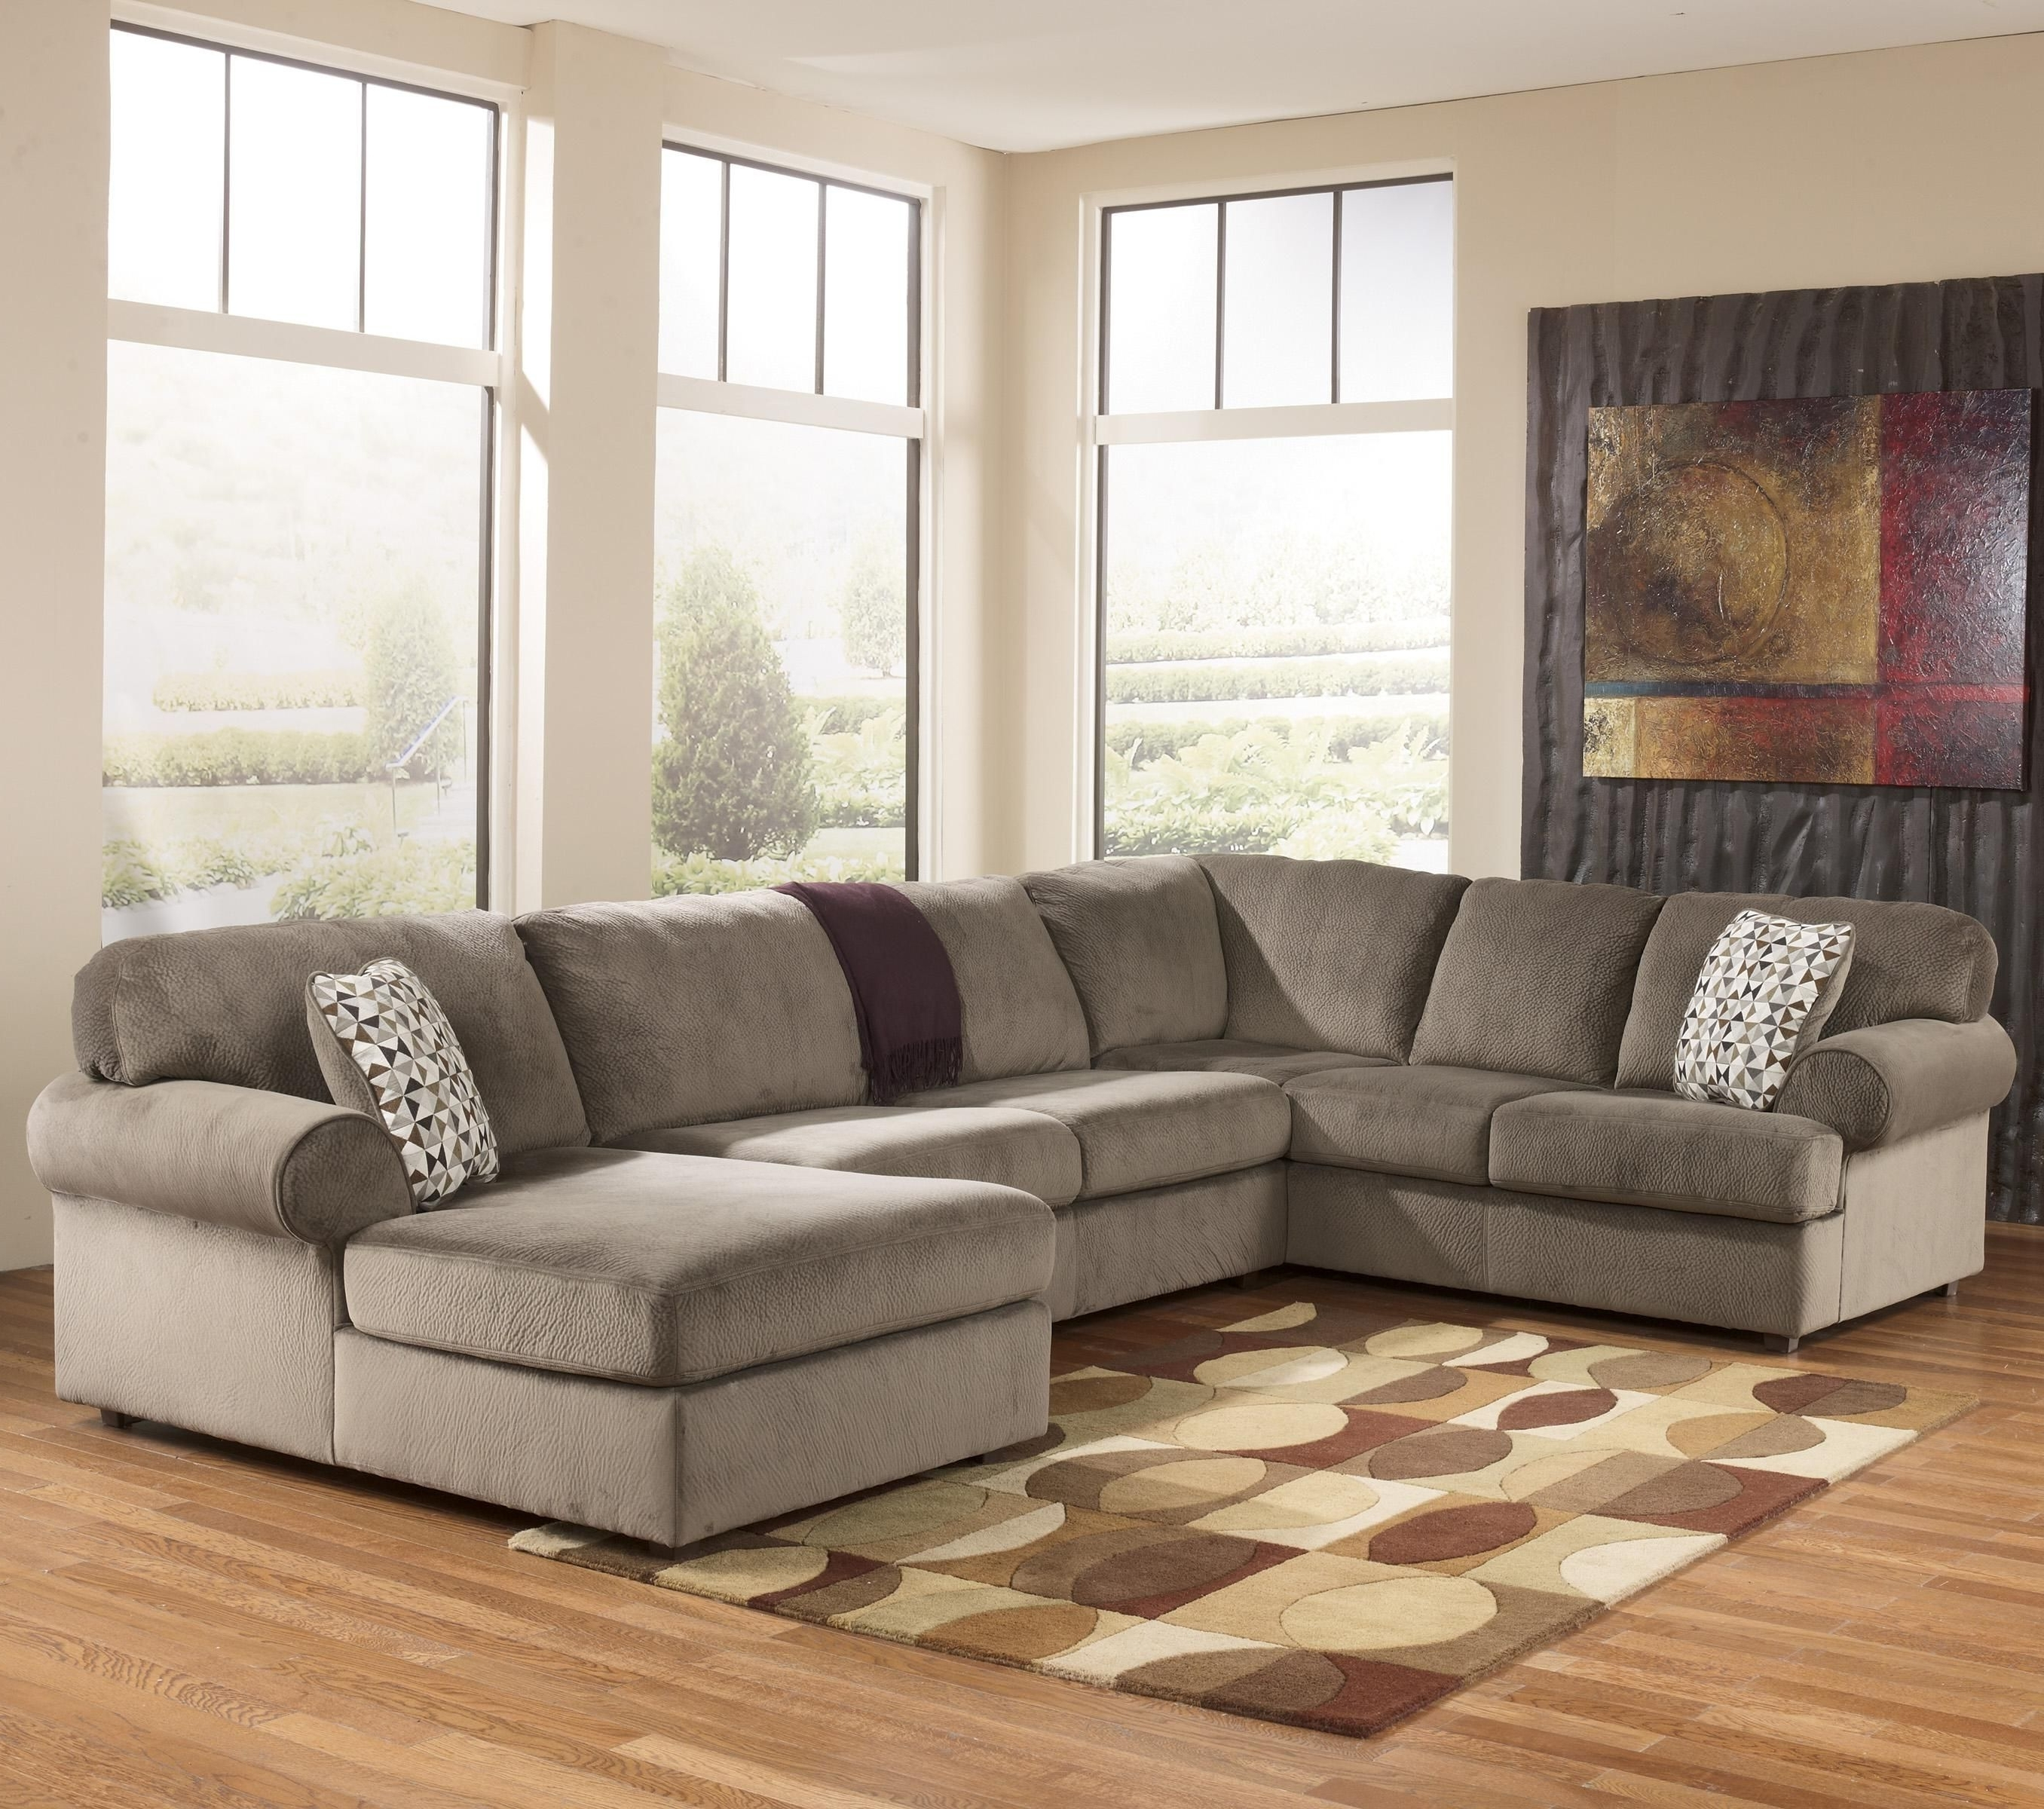 Best And Newest Pensacola Fl Sectional Sofas Intended For Jessa Place – Dune Casual Sectional Sofa With Right Chaise (View 18 of 20)